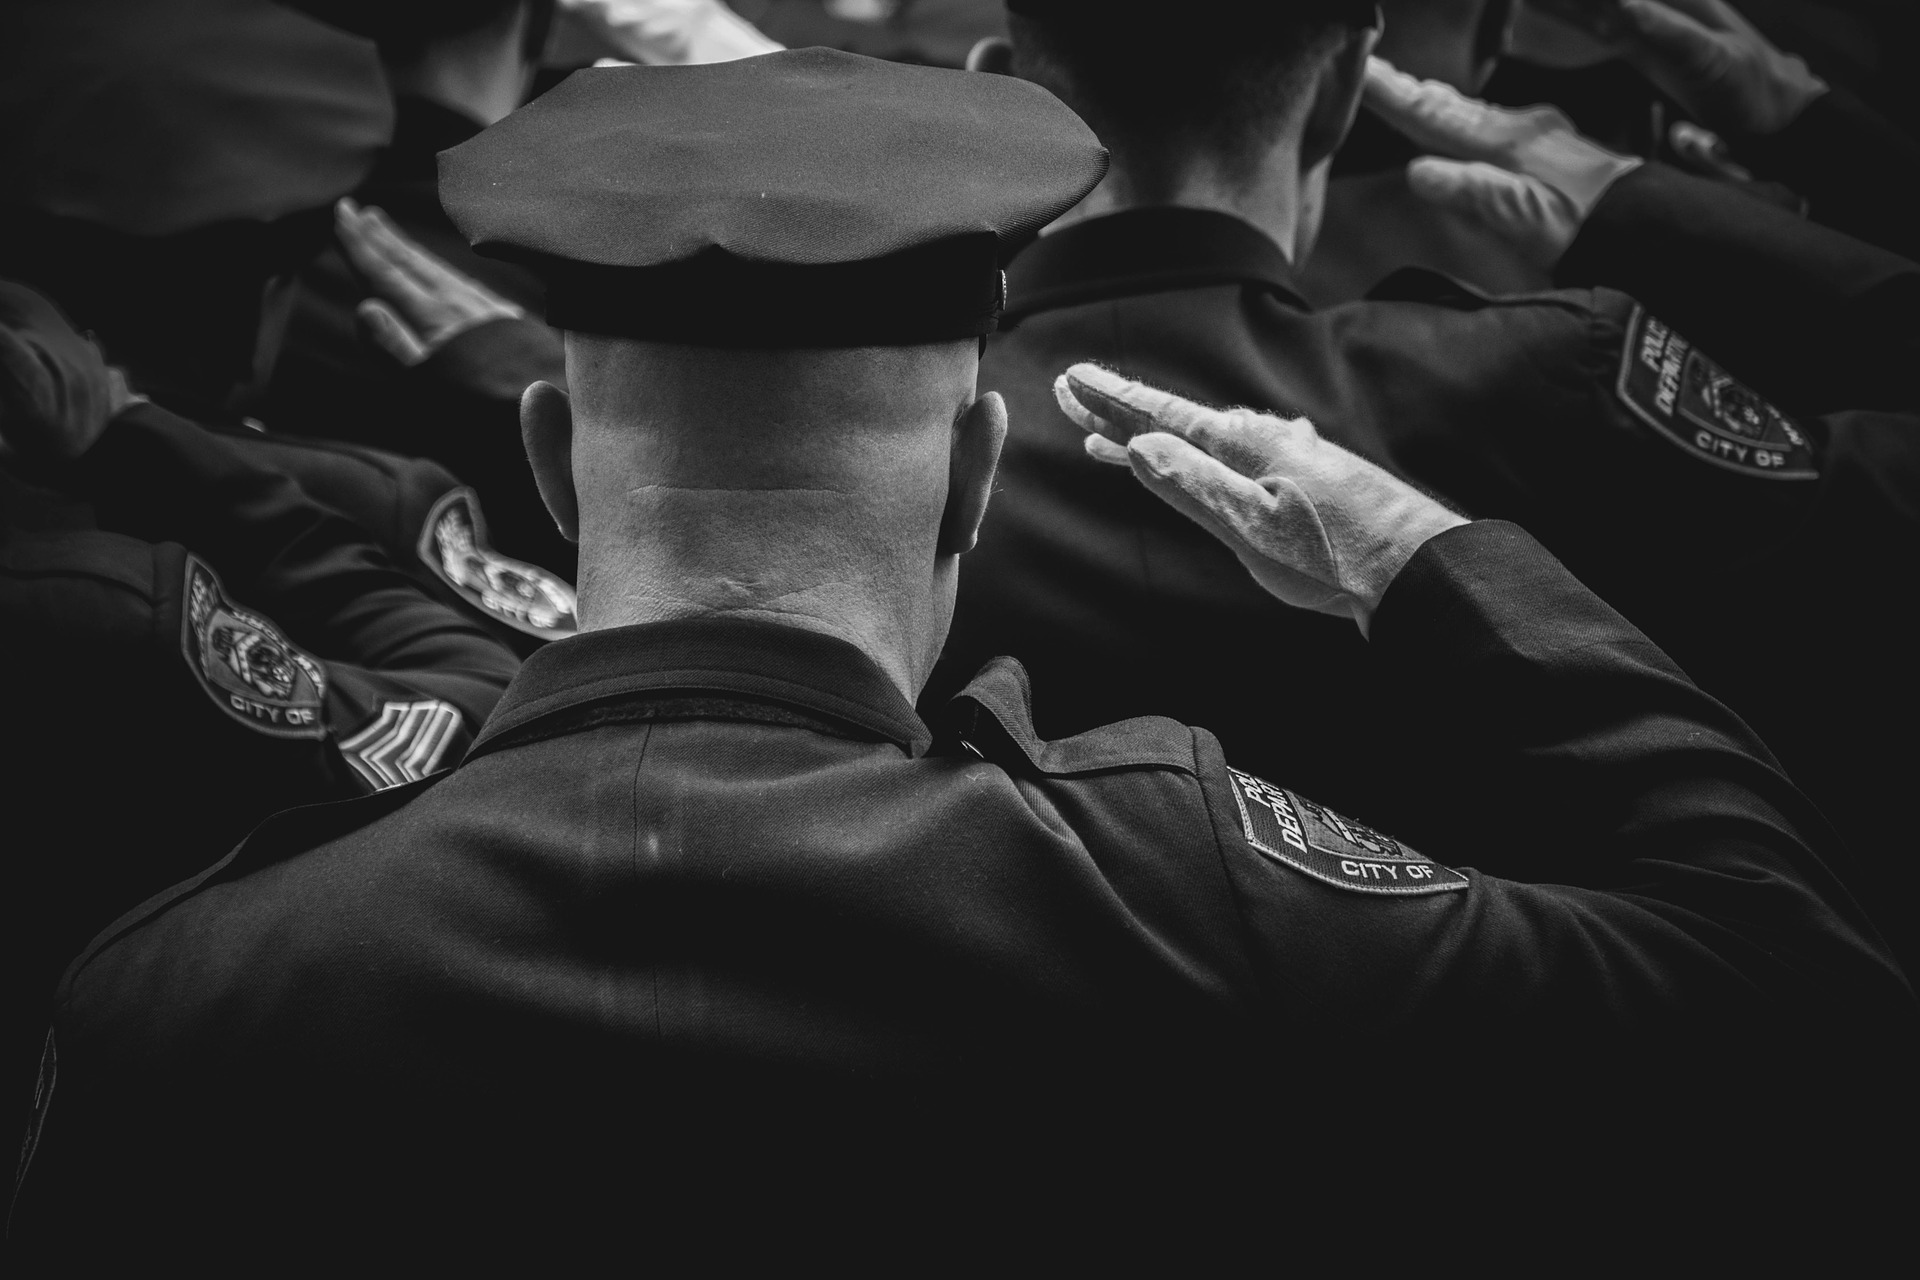 Police officers saluting.